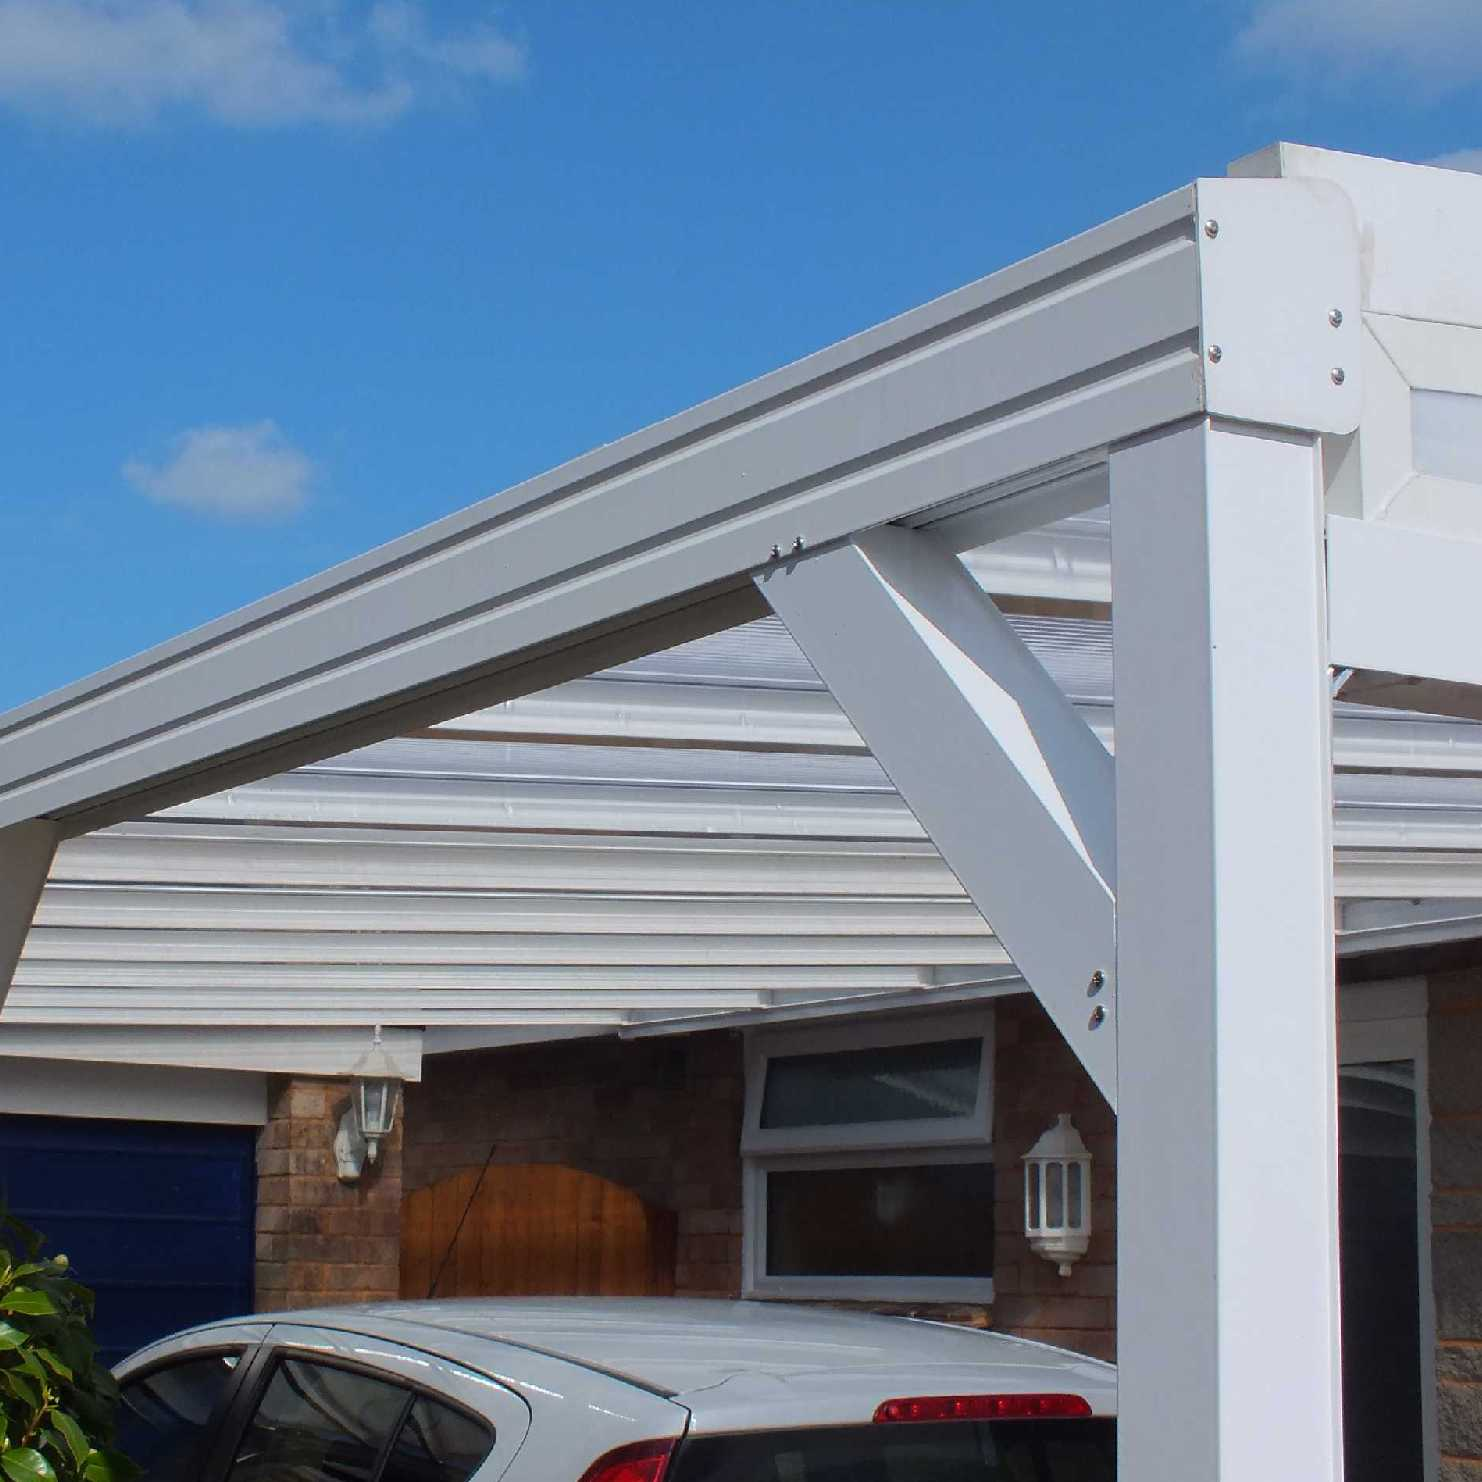 Great deals on Omega Smart Lean-To Canopy with 16mm Polycarbonate Glazing - 9.6m (W) x 4.5m (P), (5) Supporting Posts